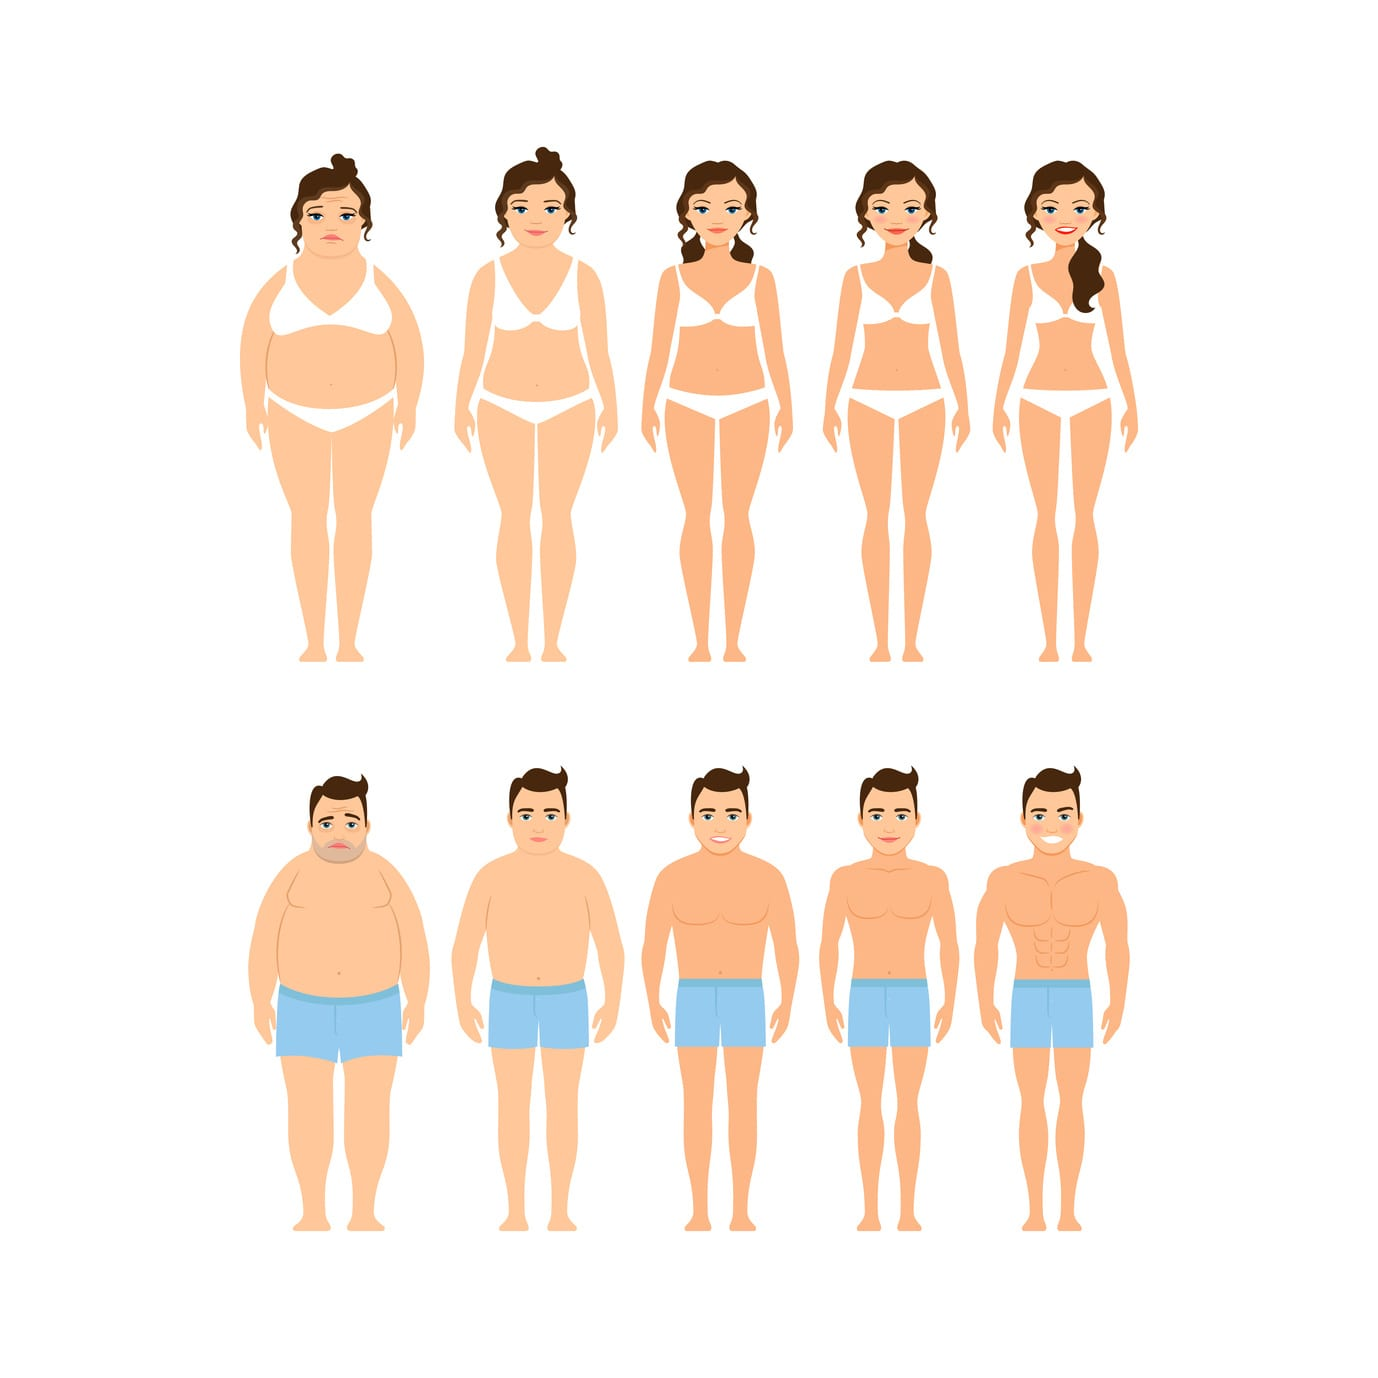 Men and women lose weight differently